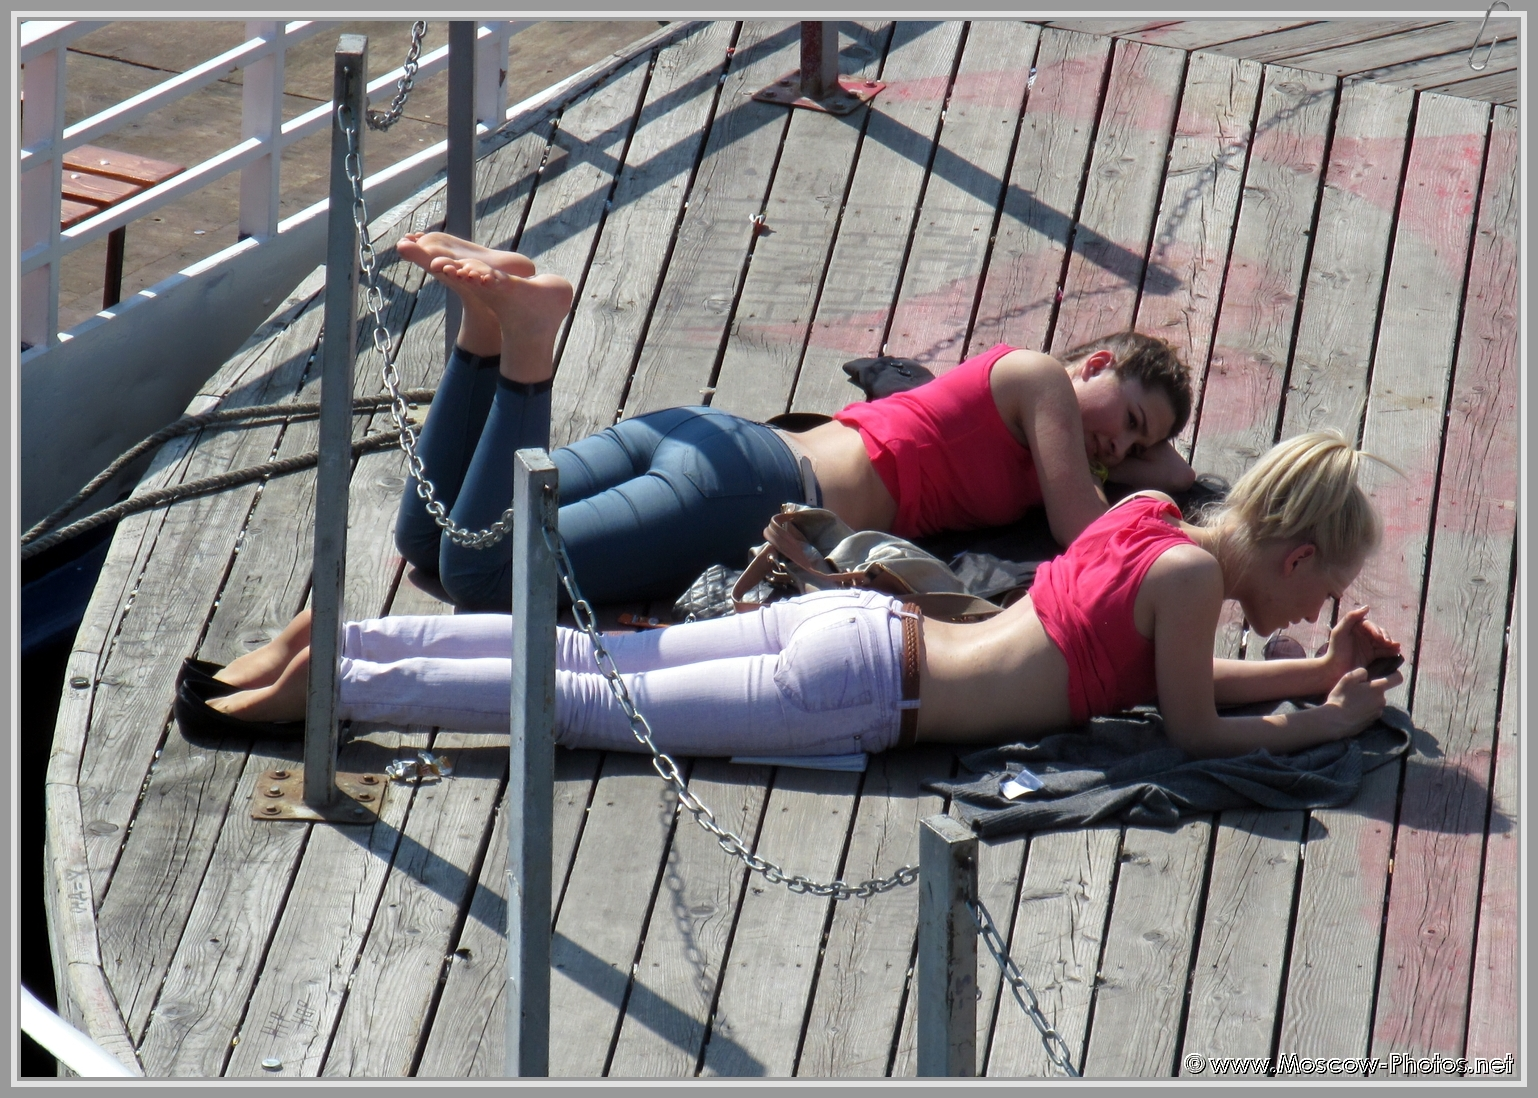 You can hardly get a tan in clothes, although on the pier